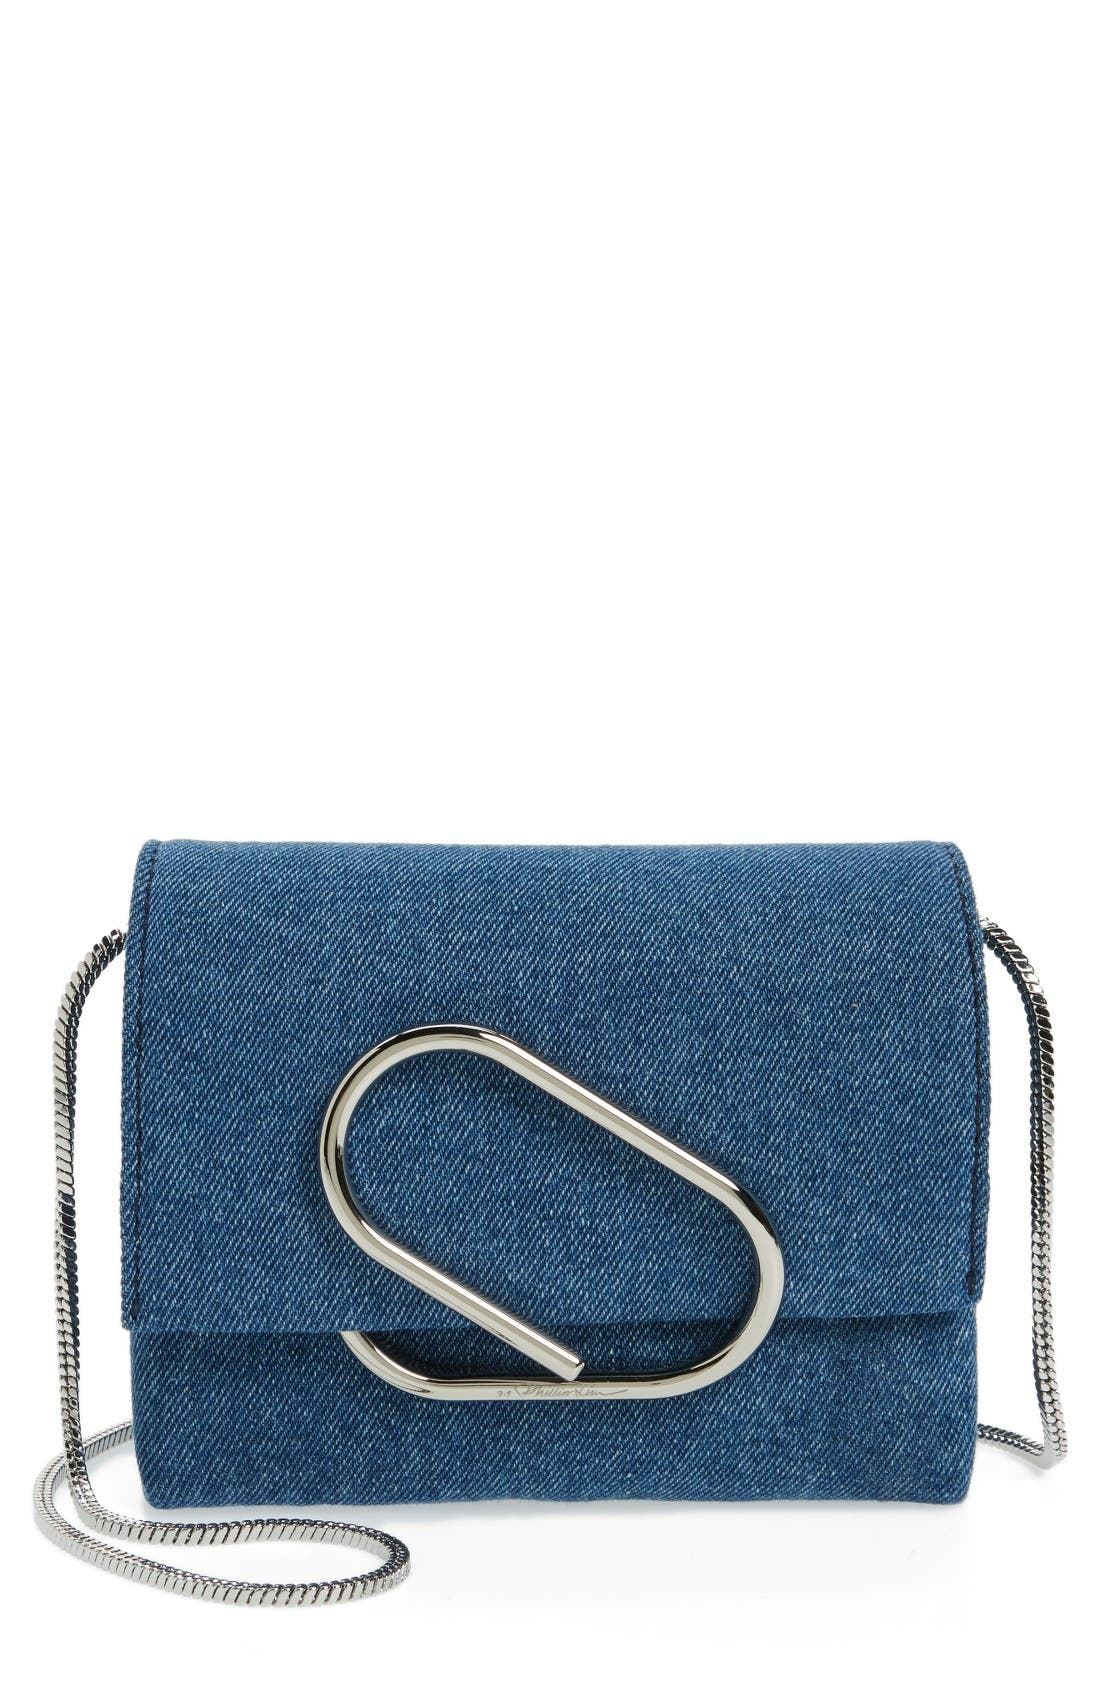 3.1 PHILLIP LIM Micro Alix Crossbody Bag